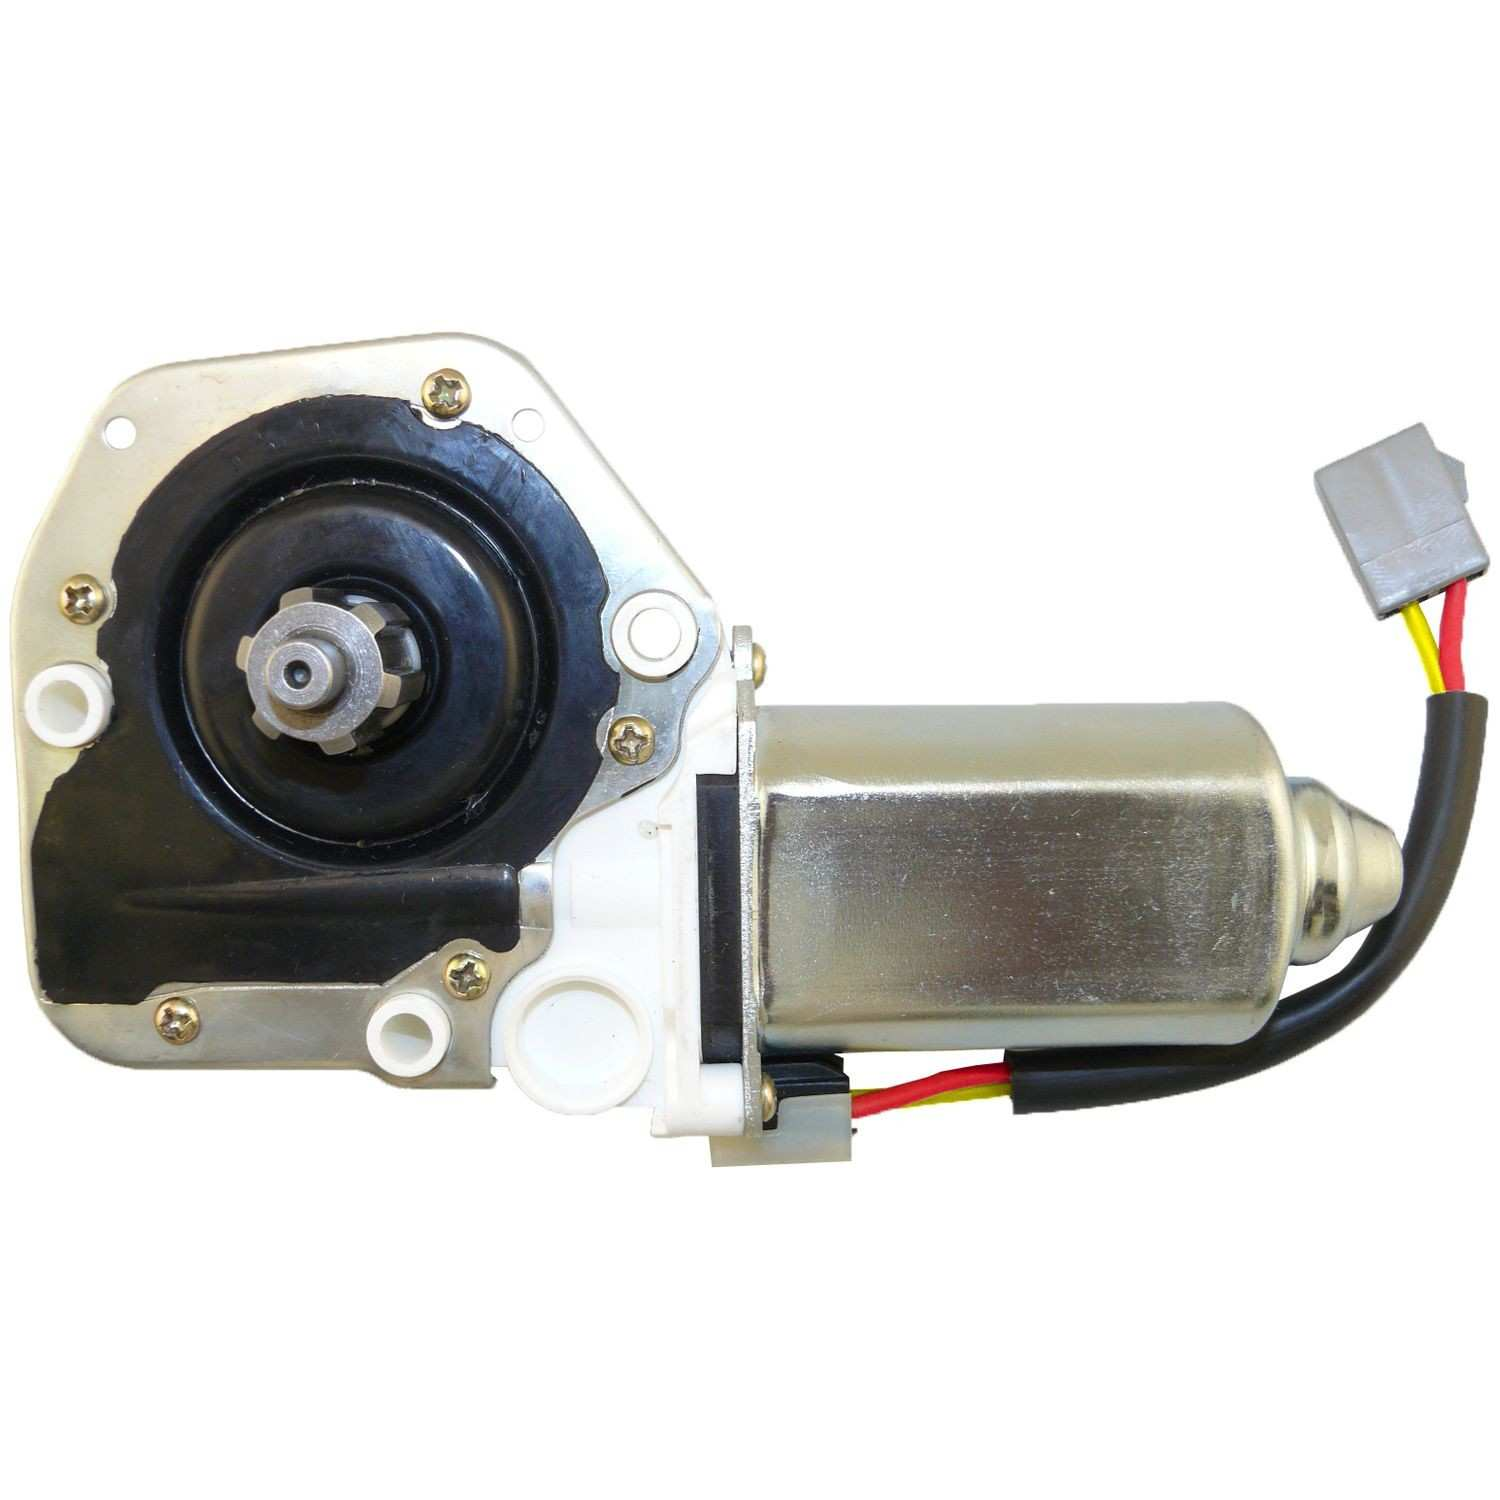 MAGNETI MARELLI OFFERED BY MOPAR - Power Window Motor - MGM 1AMWM83098